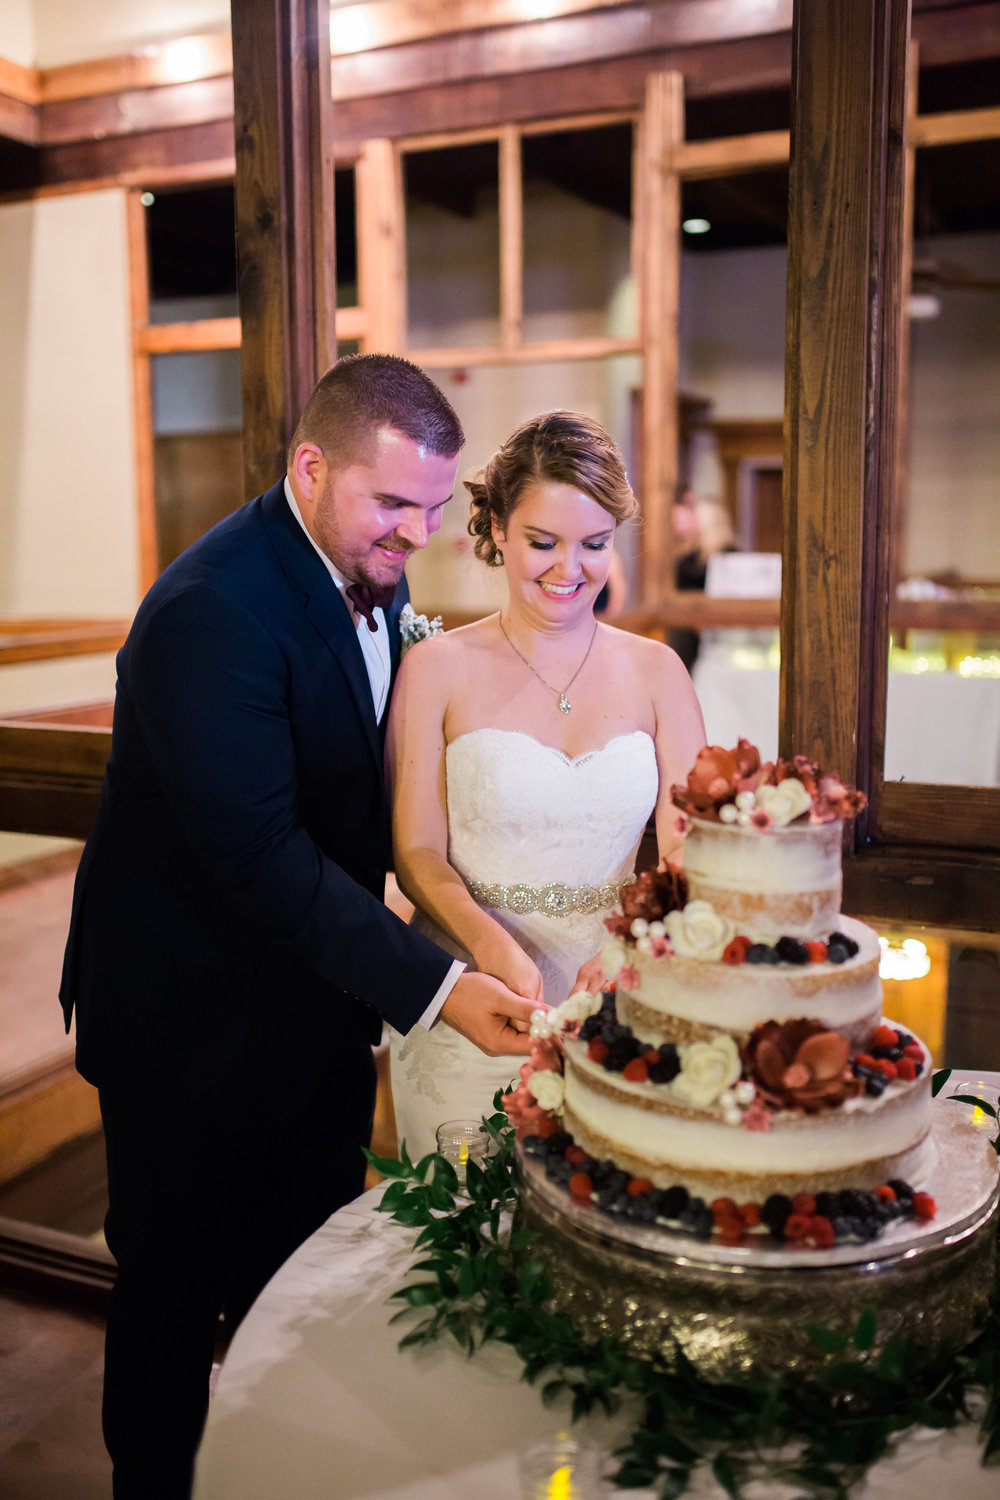 Wedding at the Trolley Station in Galveston, TX | Houston and Galveston Wedding Planners | Naked Cake with fresh berries